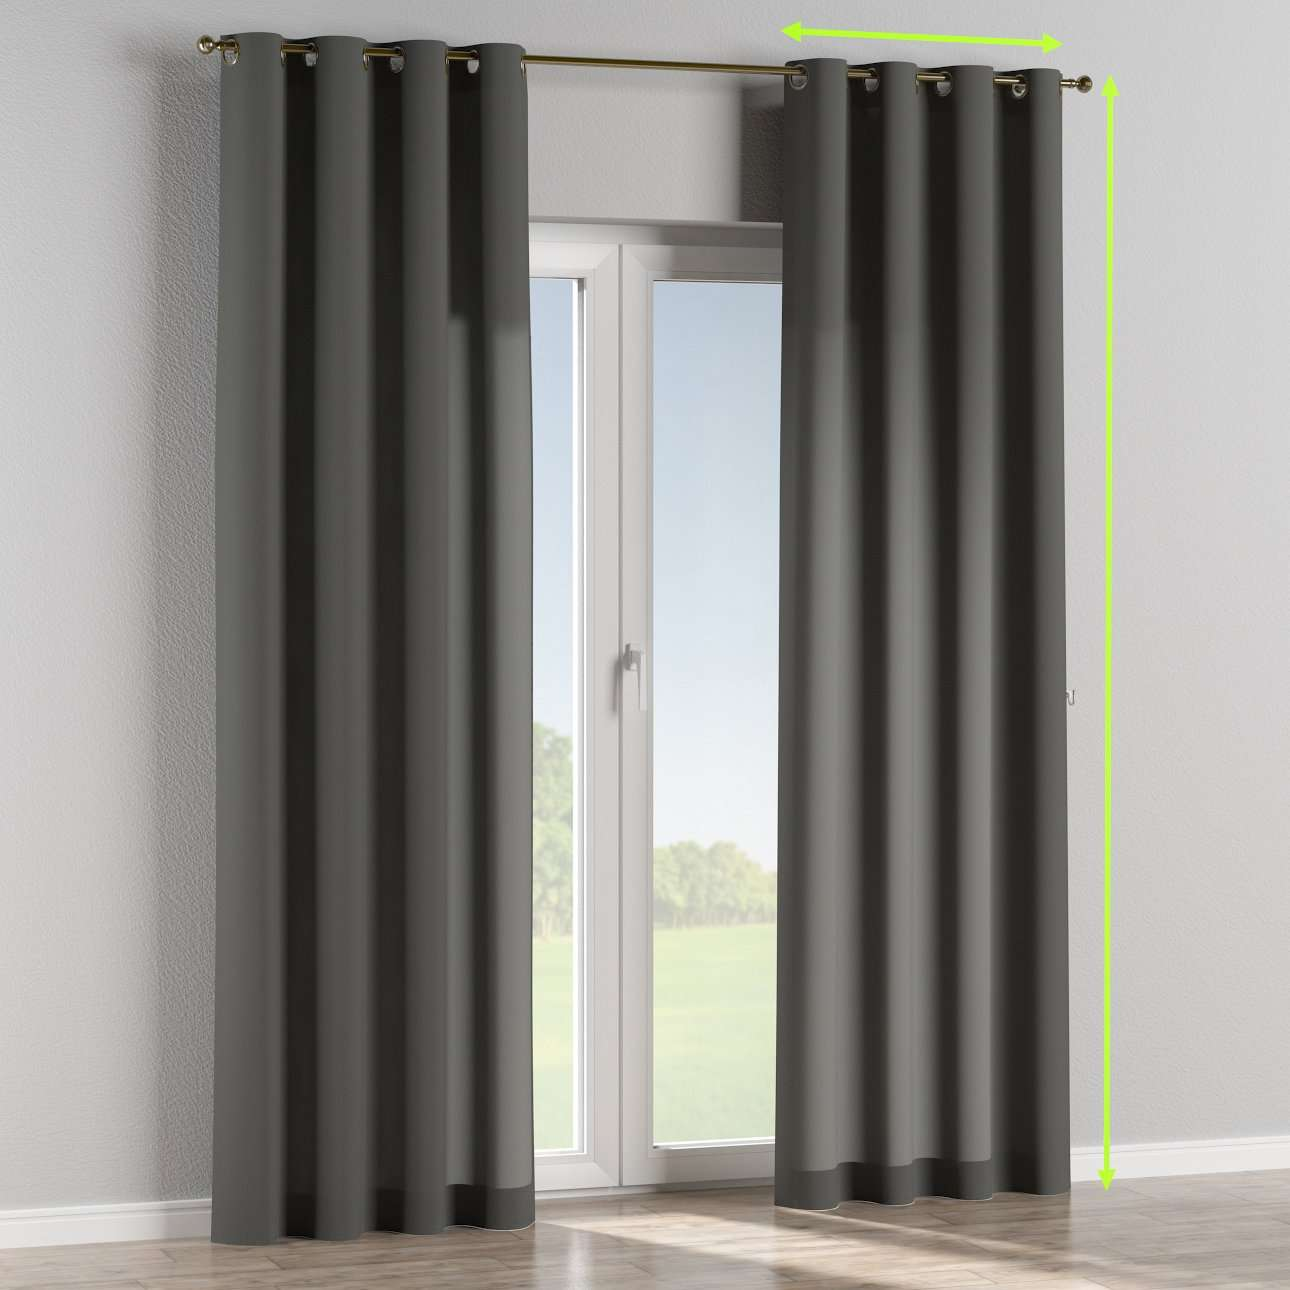 Eyelet curtain in collection Quadro, fabric: 136-14